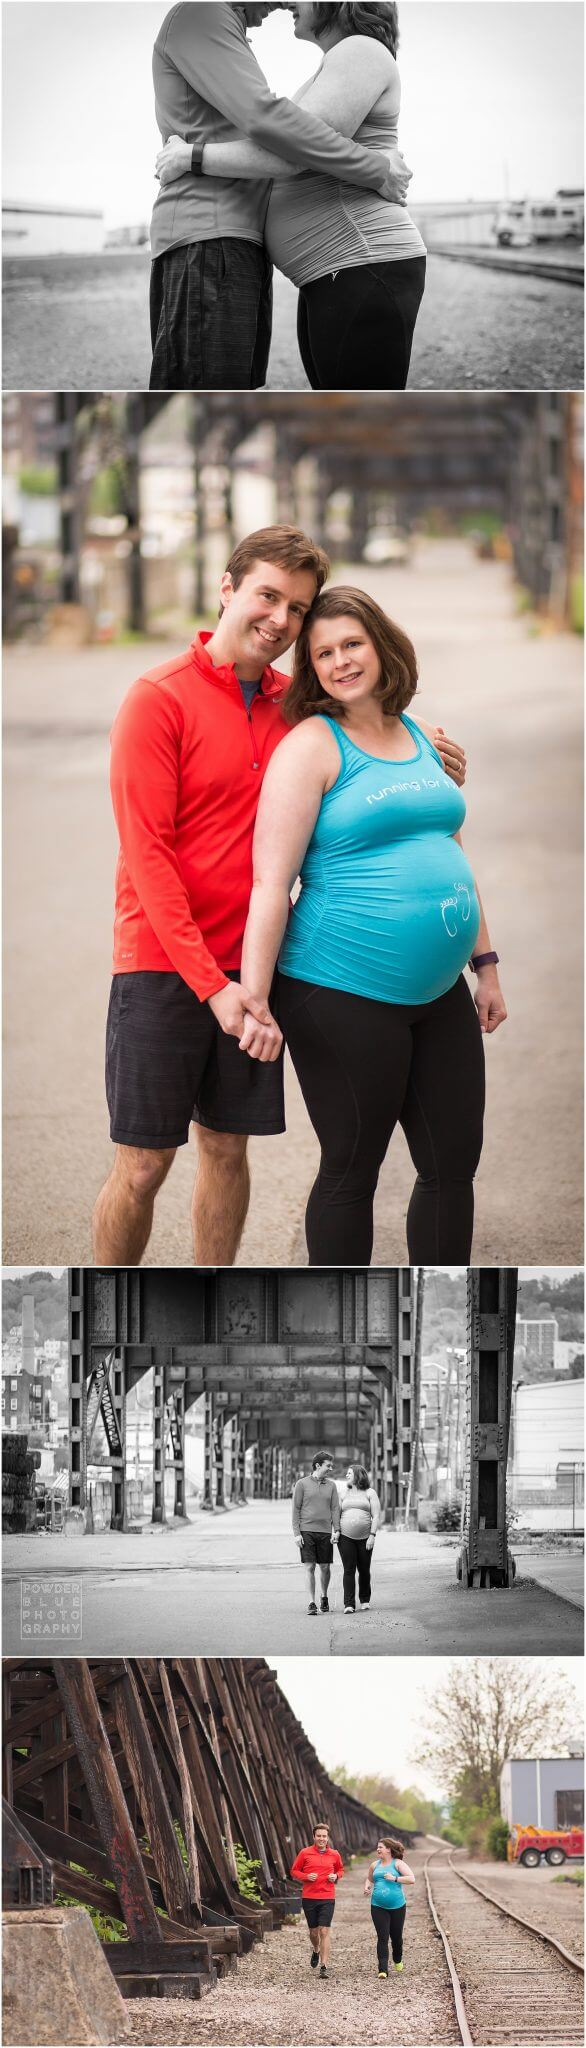 pittsburgh maternity photography session. fitness themed maternity photography portrait session overlooking pittsburgh skyline.